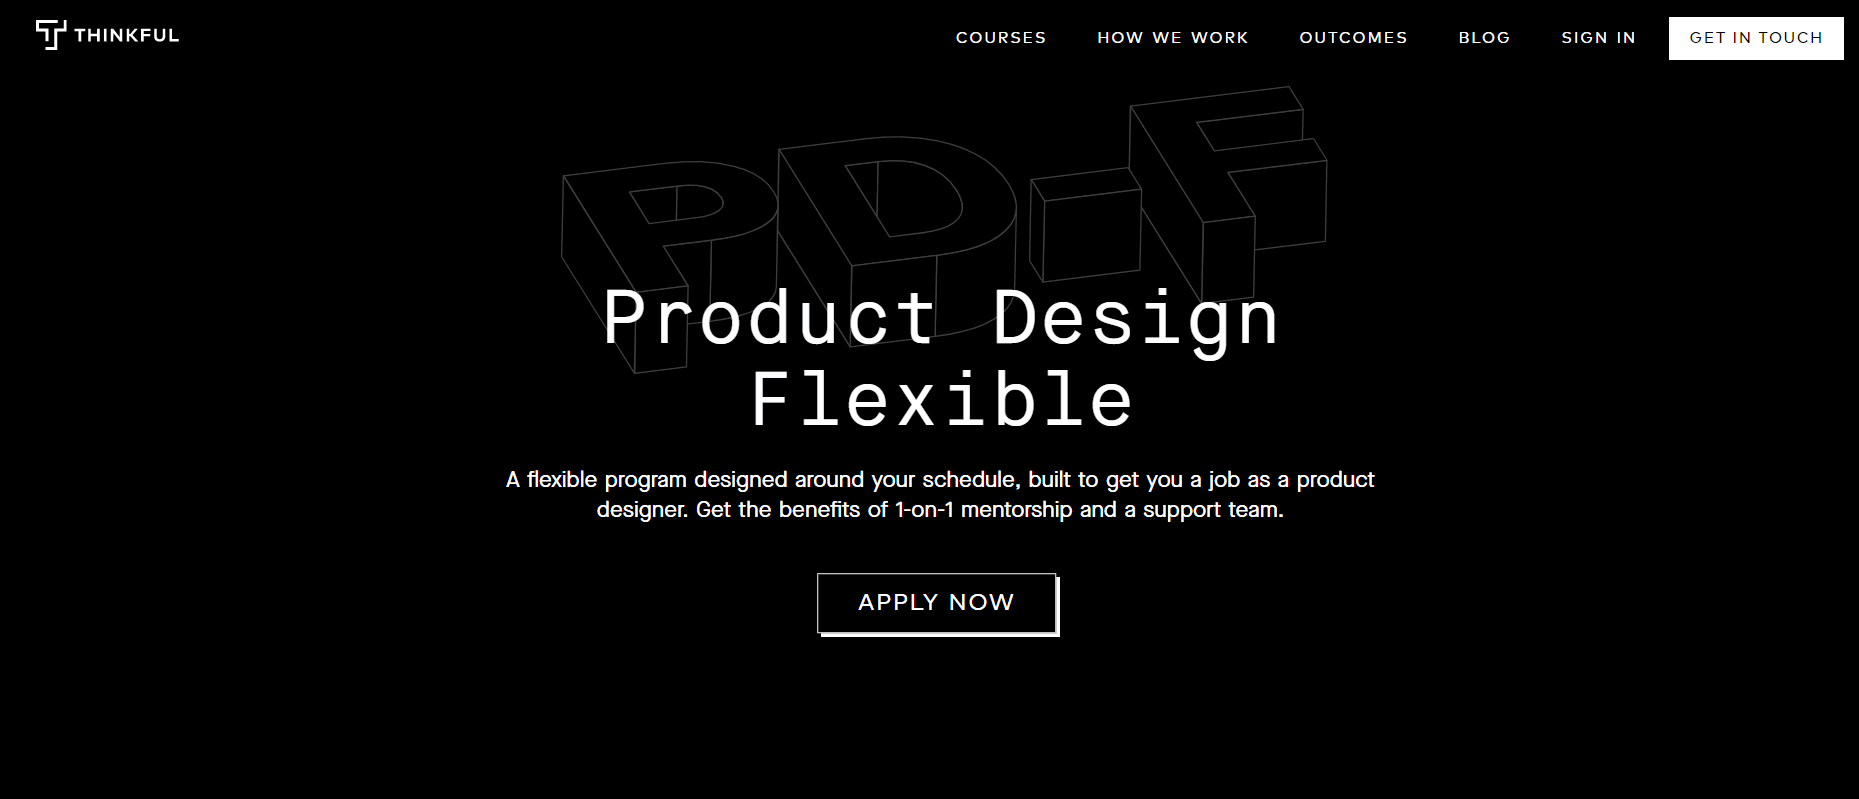 Thinkful Product Design Flexible